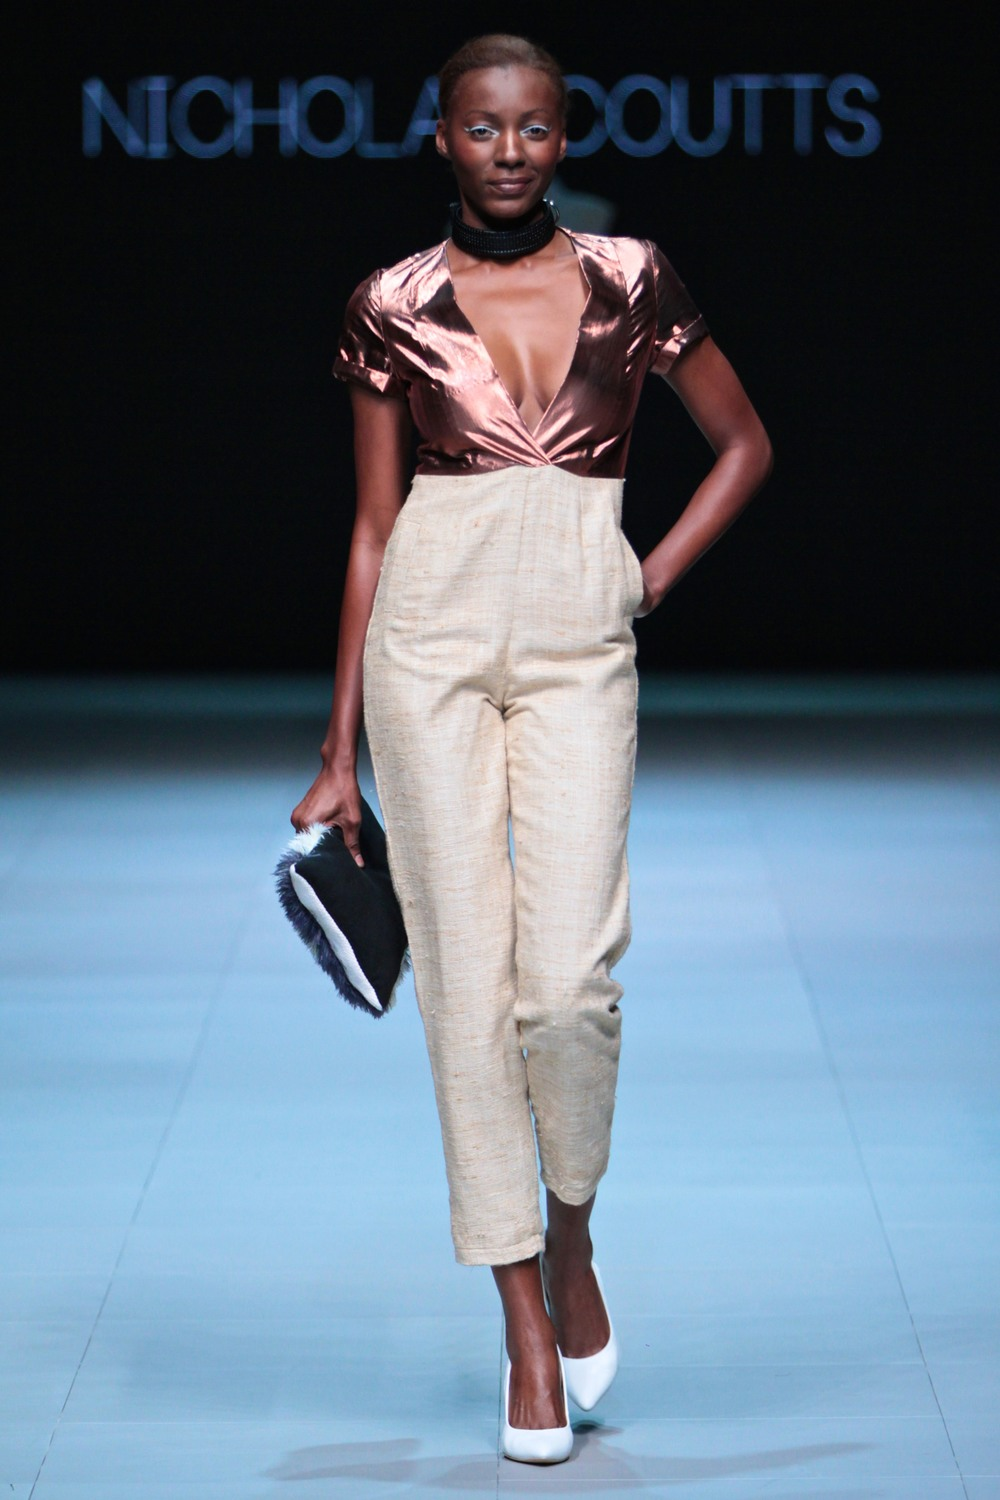 14_MBFWCT_SDR_0462_NicholasCoutts.jpg